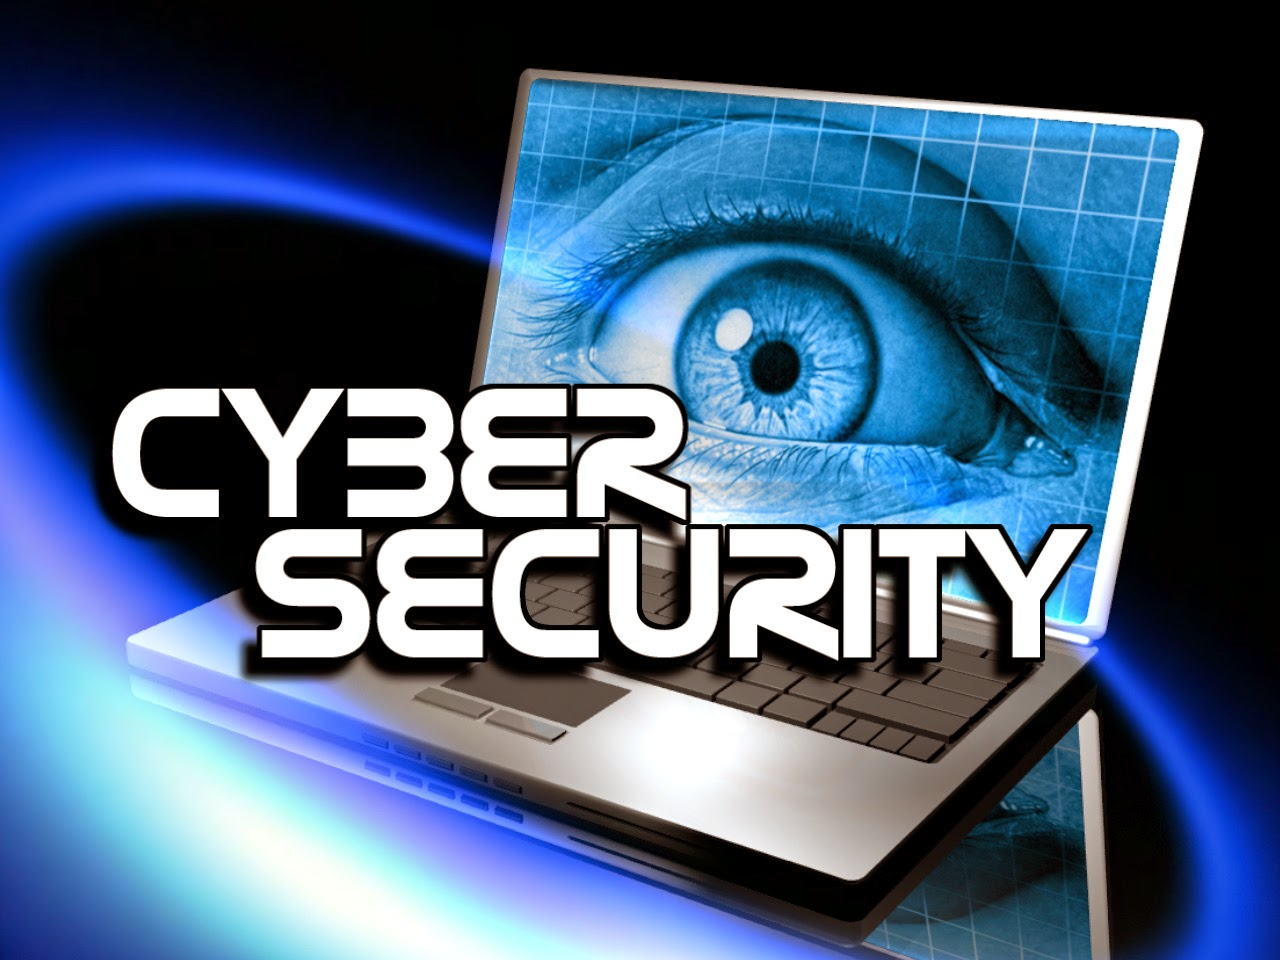 market analysis of it security industry The global internet security market is poised to grow at a cagr of around 95% over the next decade to reach approximately $6618 billion by 2025.